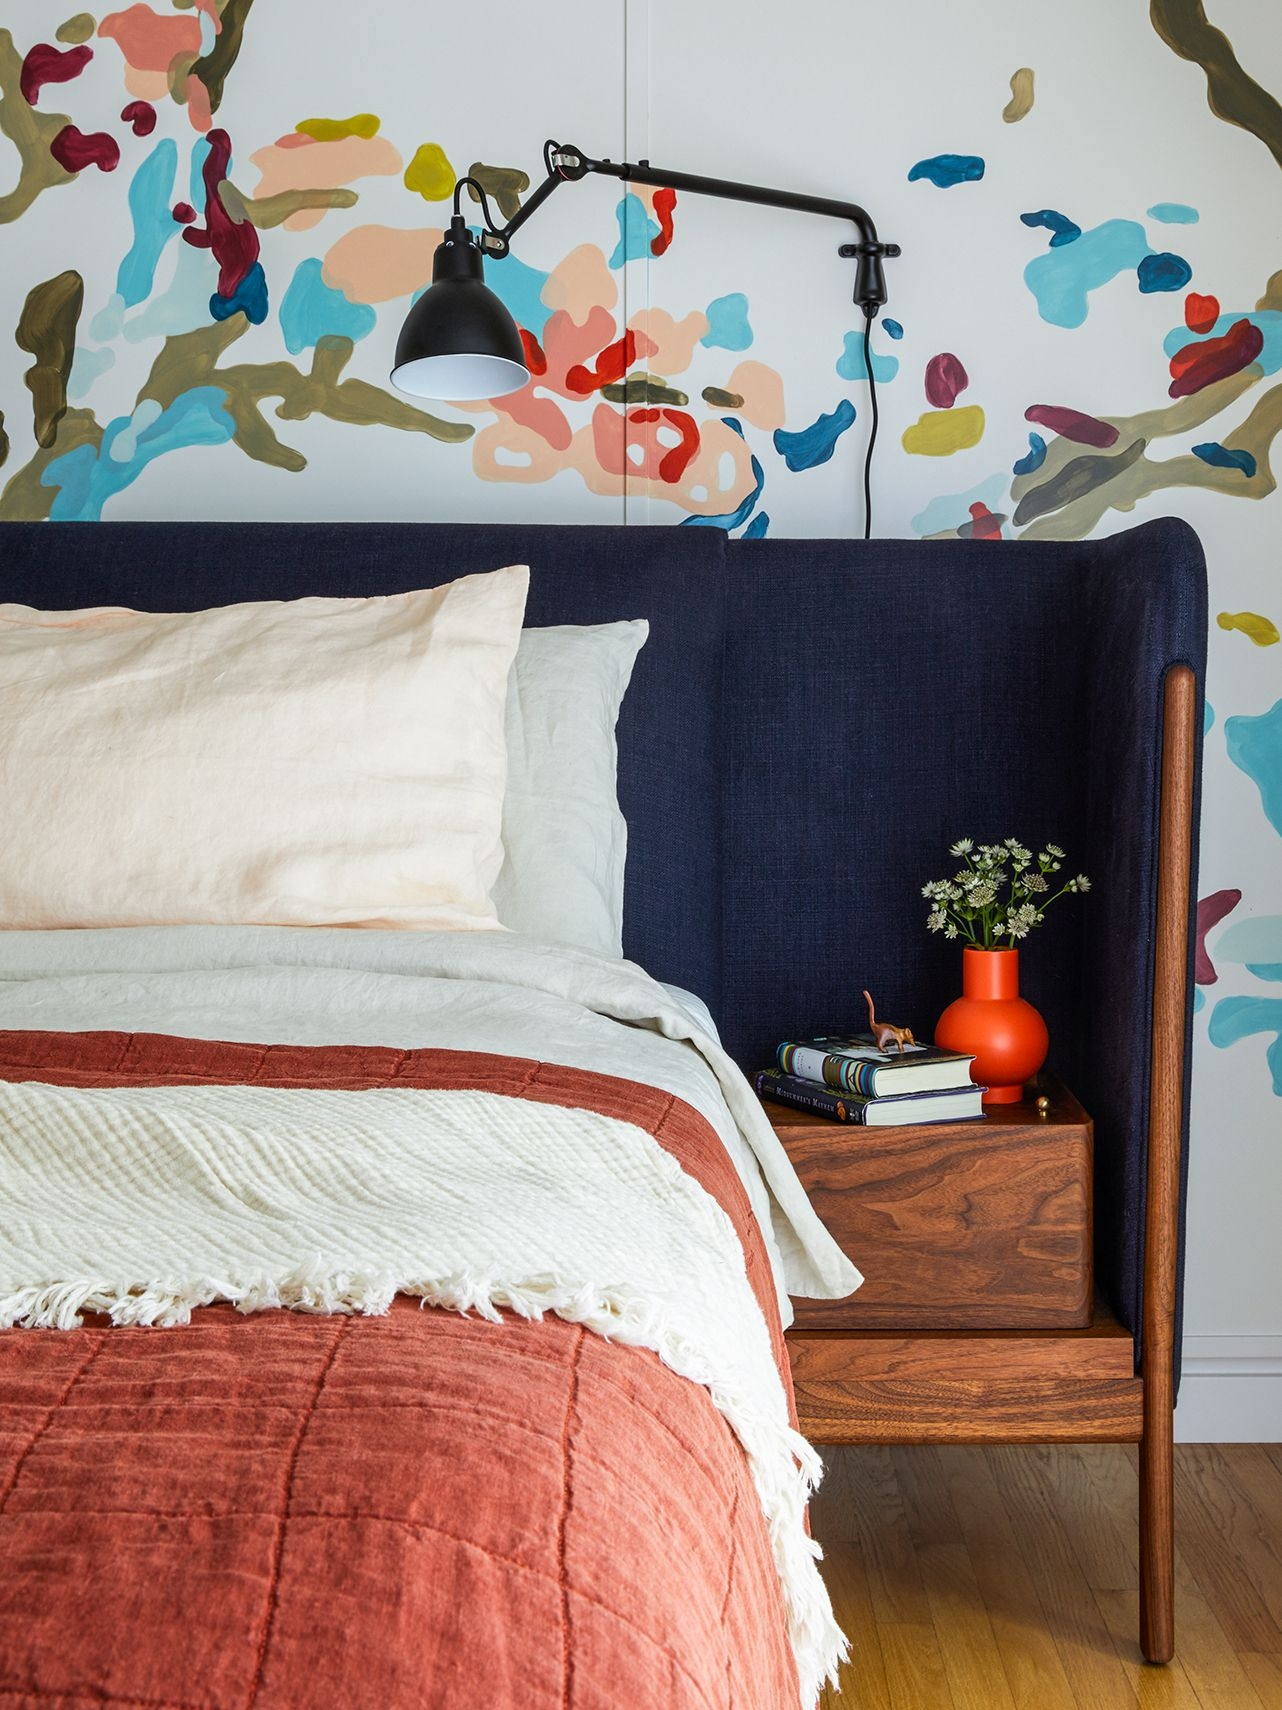 Paul Smith Meets Van Gogh In This Colorful Portland Home